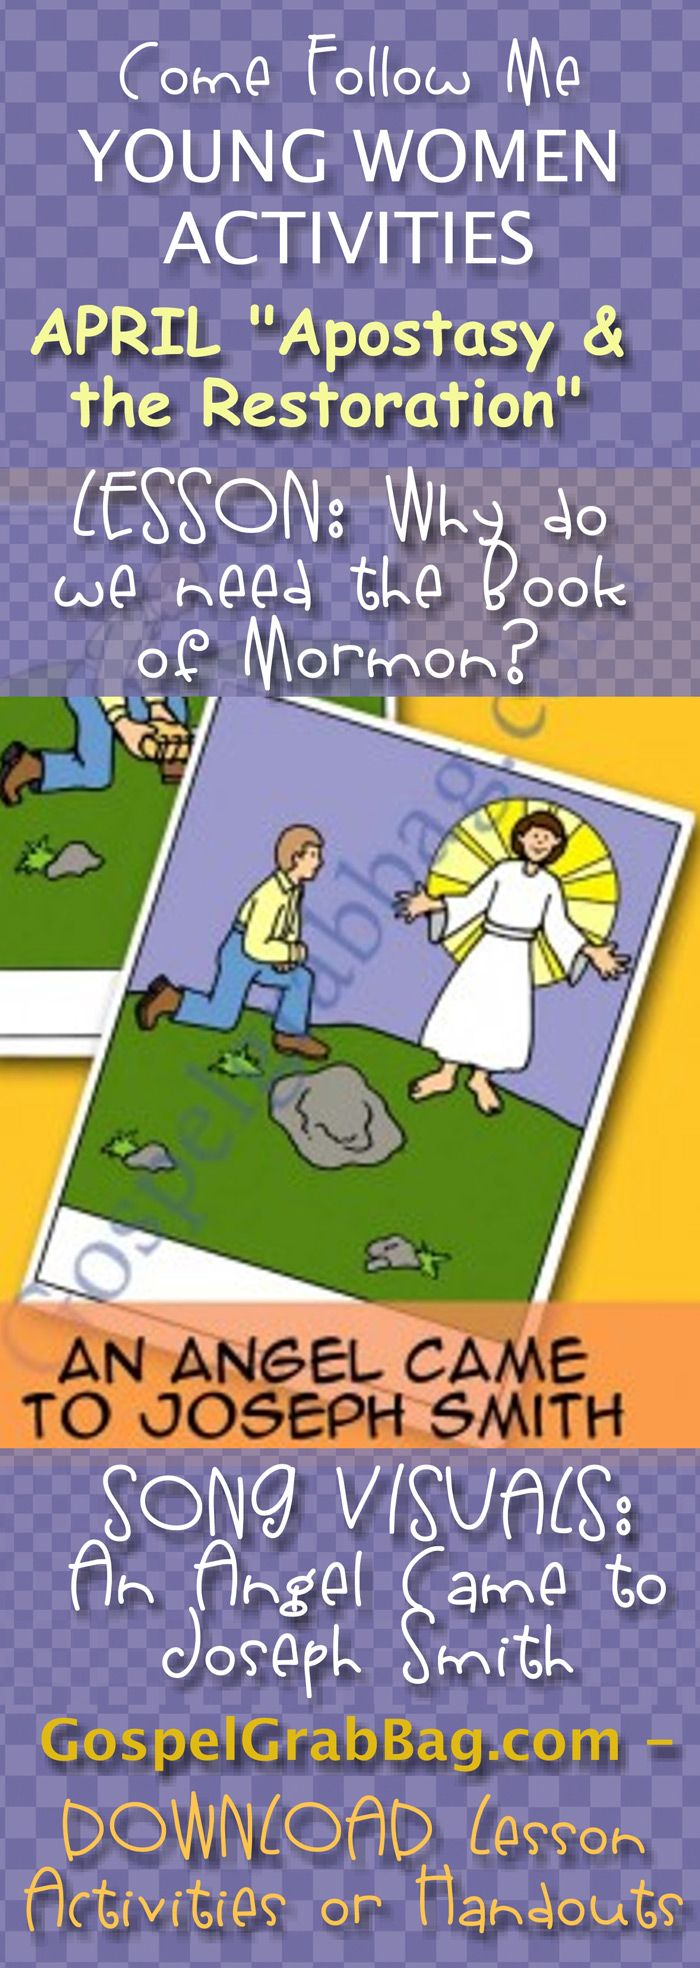 """BOOK OF MORMON: Come Follow Me – LDS Young Women Activities, APRIL Theme: """"The Atonement of Jesus Christ"""", LESSON: Why do we need the Book of Mormon? Activity for every lesson, SONG VISUALS: An Angel Came to Joseph Smith, Children's Songbook, 86, download from gospelgrabbag.com"""